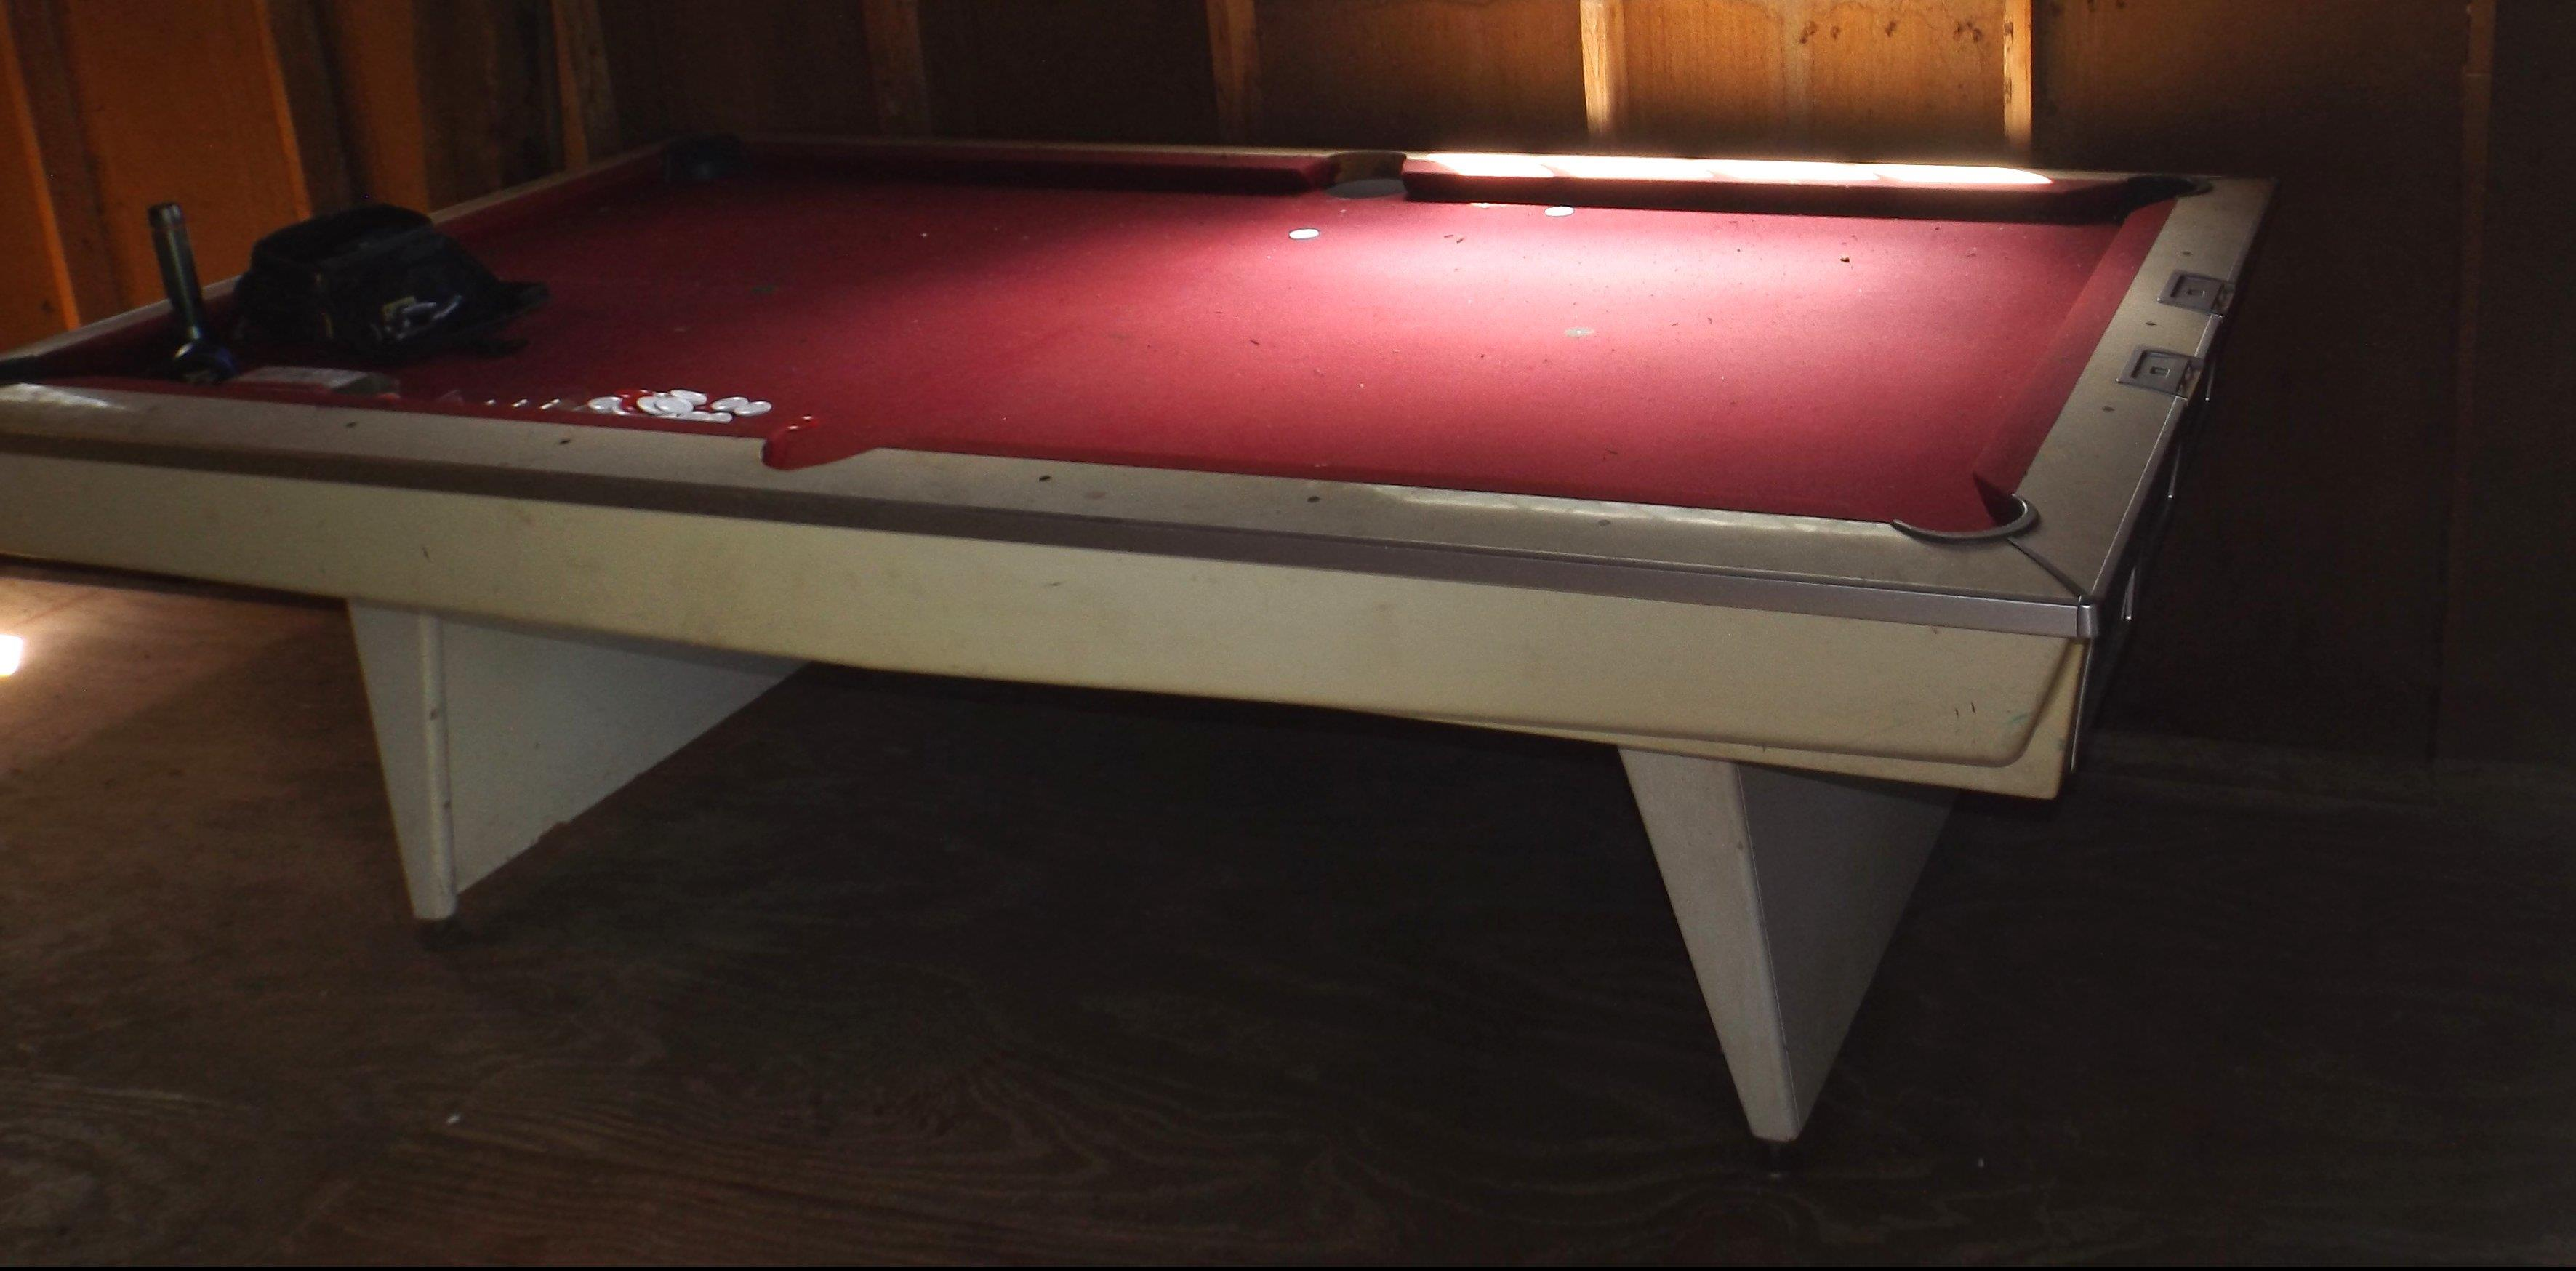 Identify This Ft Brunswick Please - Brunswick brentwood pool table